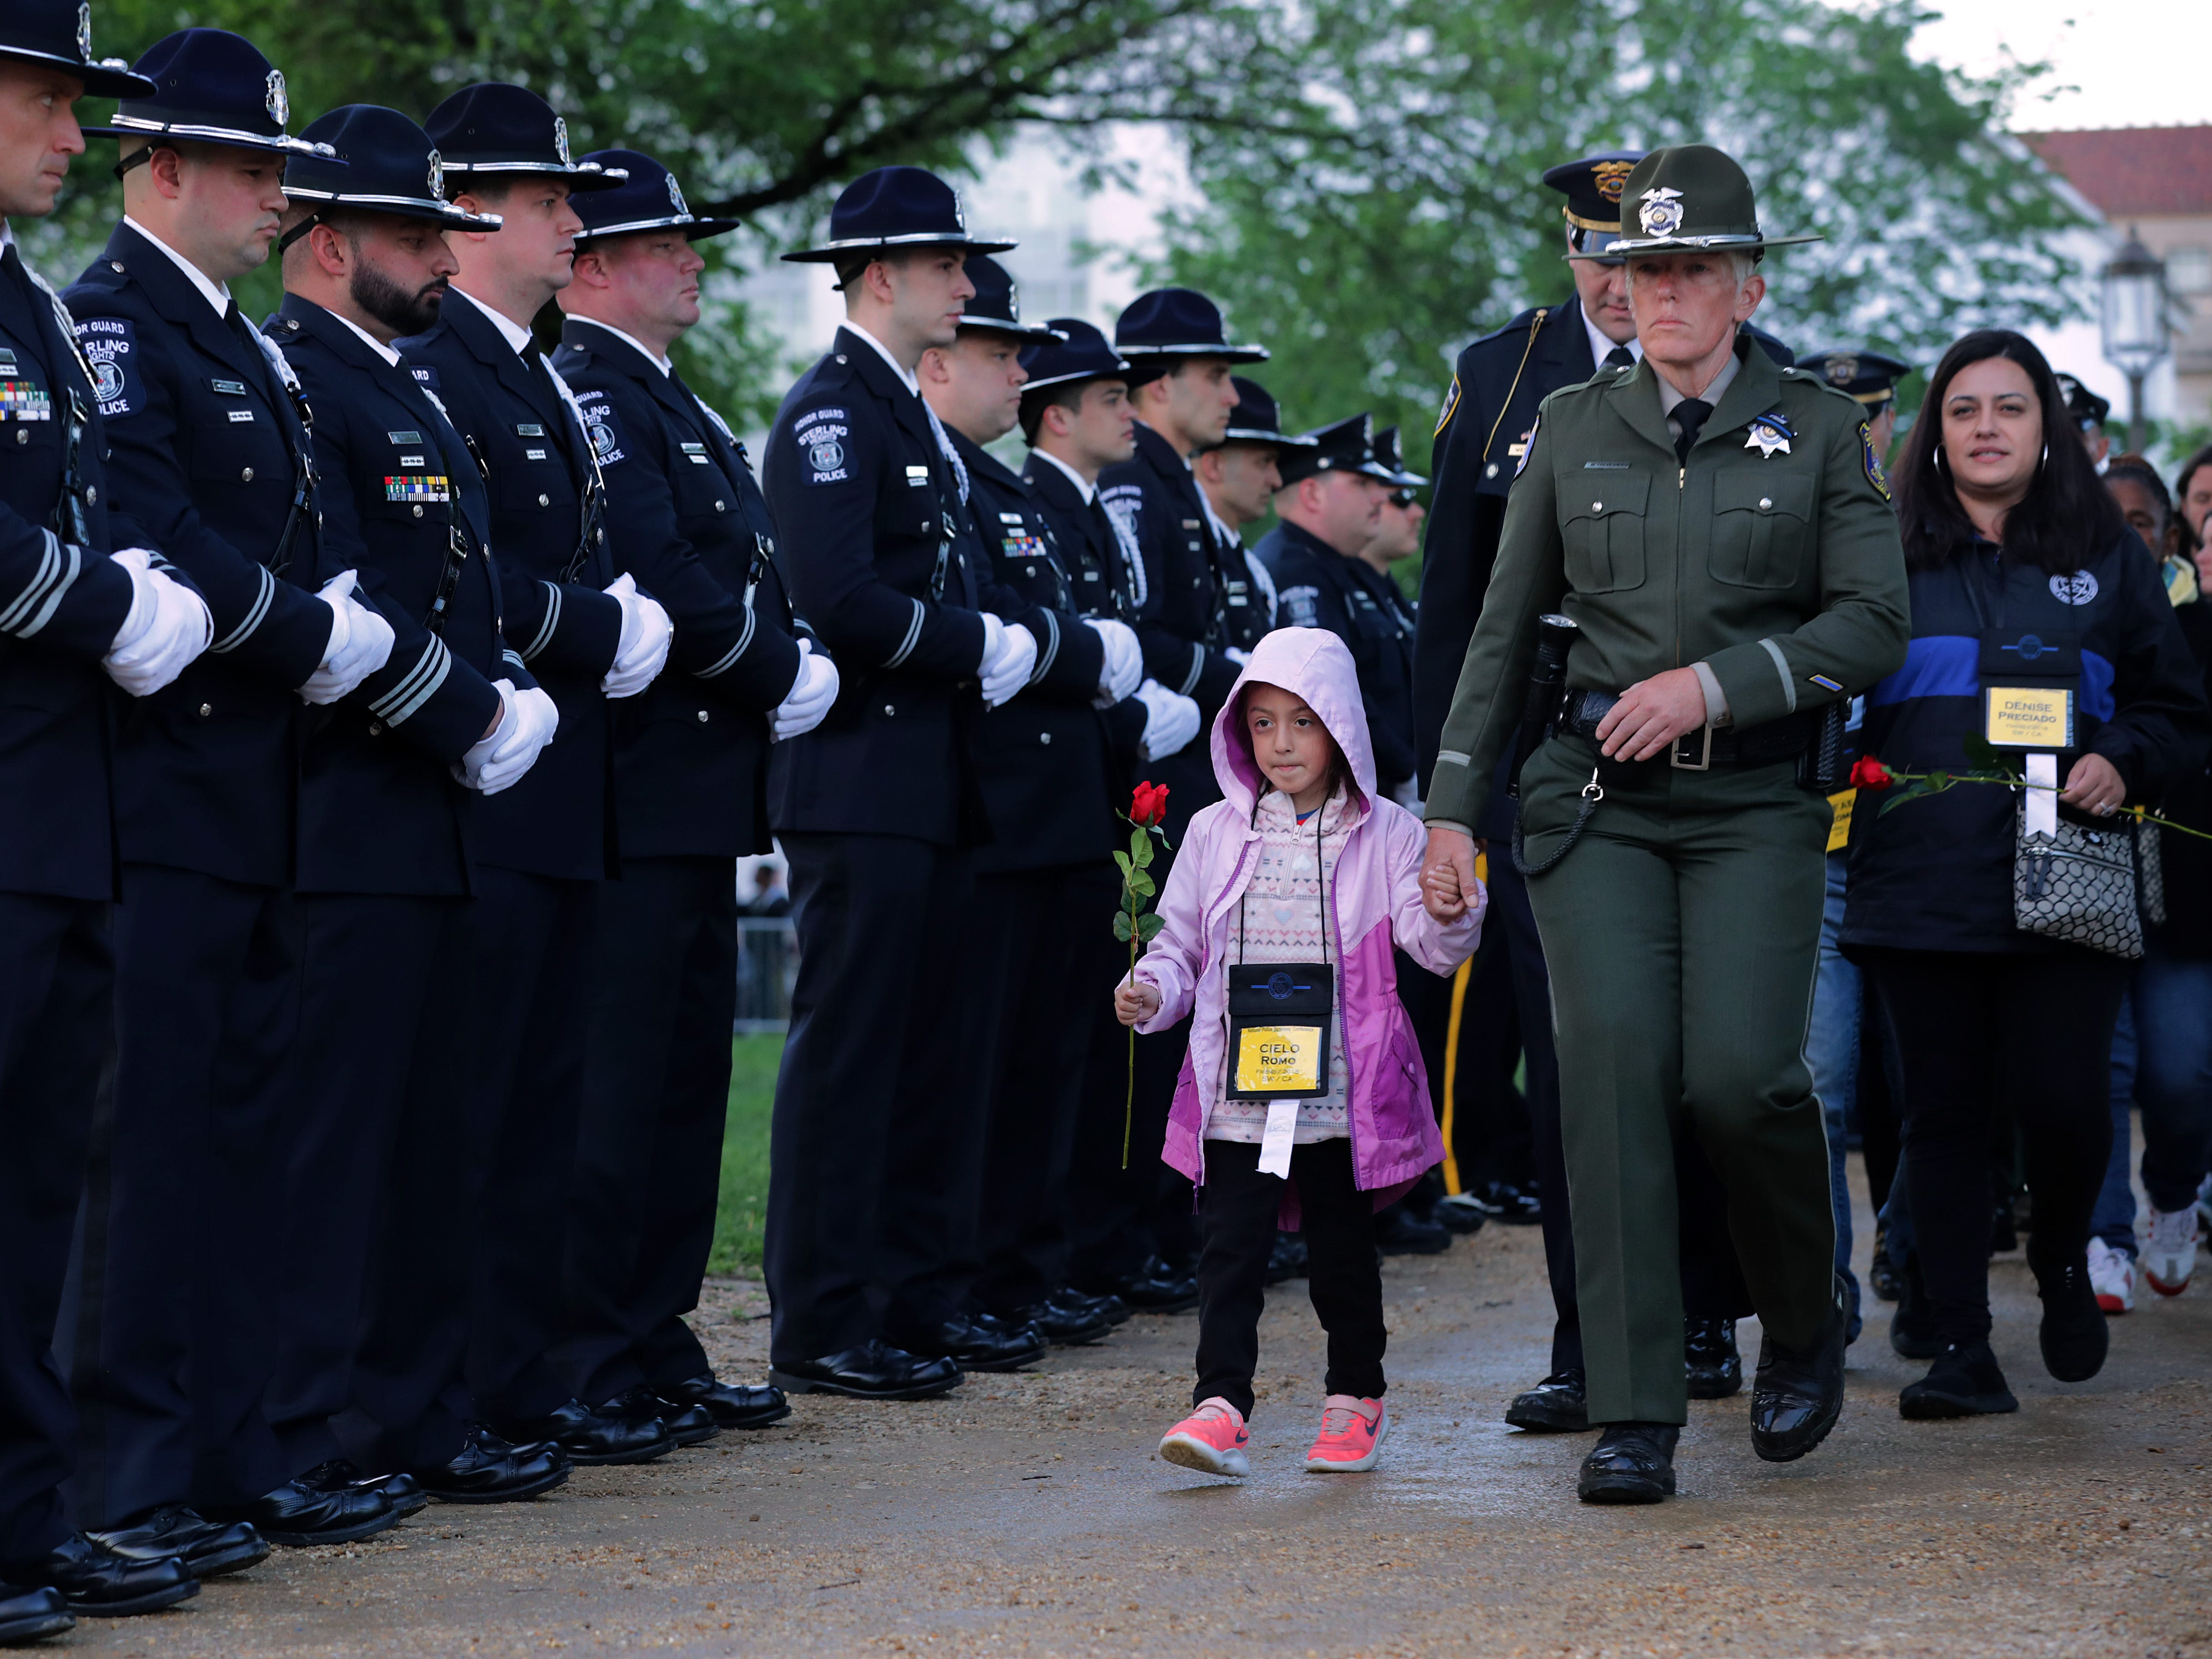 Family members of law enforcement officers who have died in the line of duty are escorted to the National Police Week 31st Annual Candlelight Vigil on the National Mall.